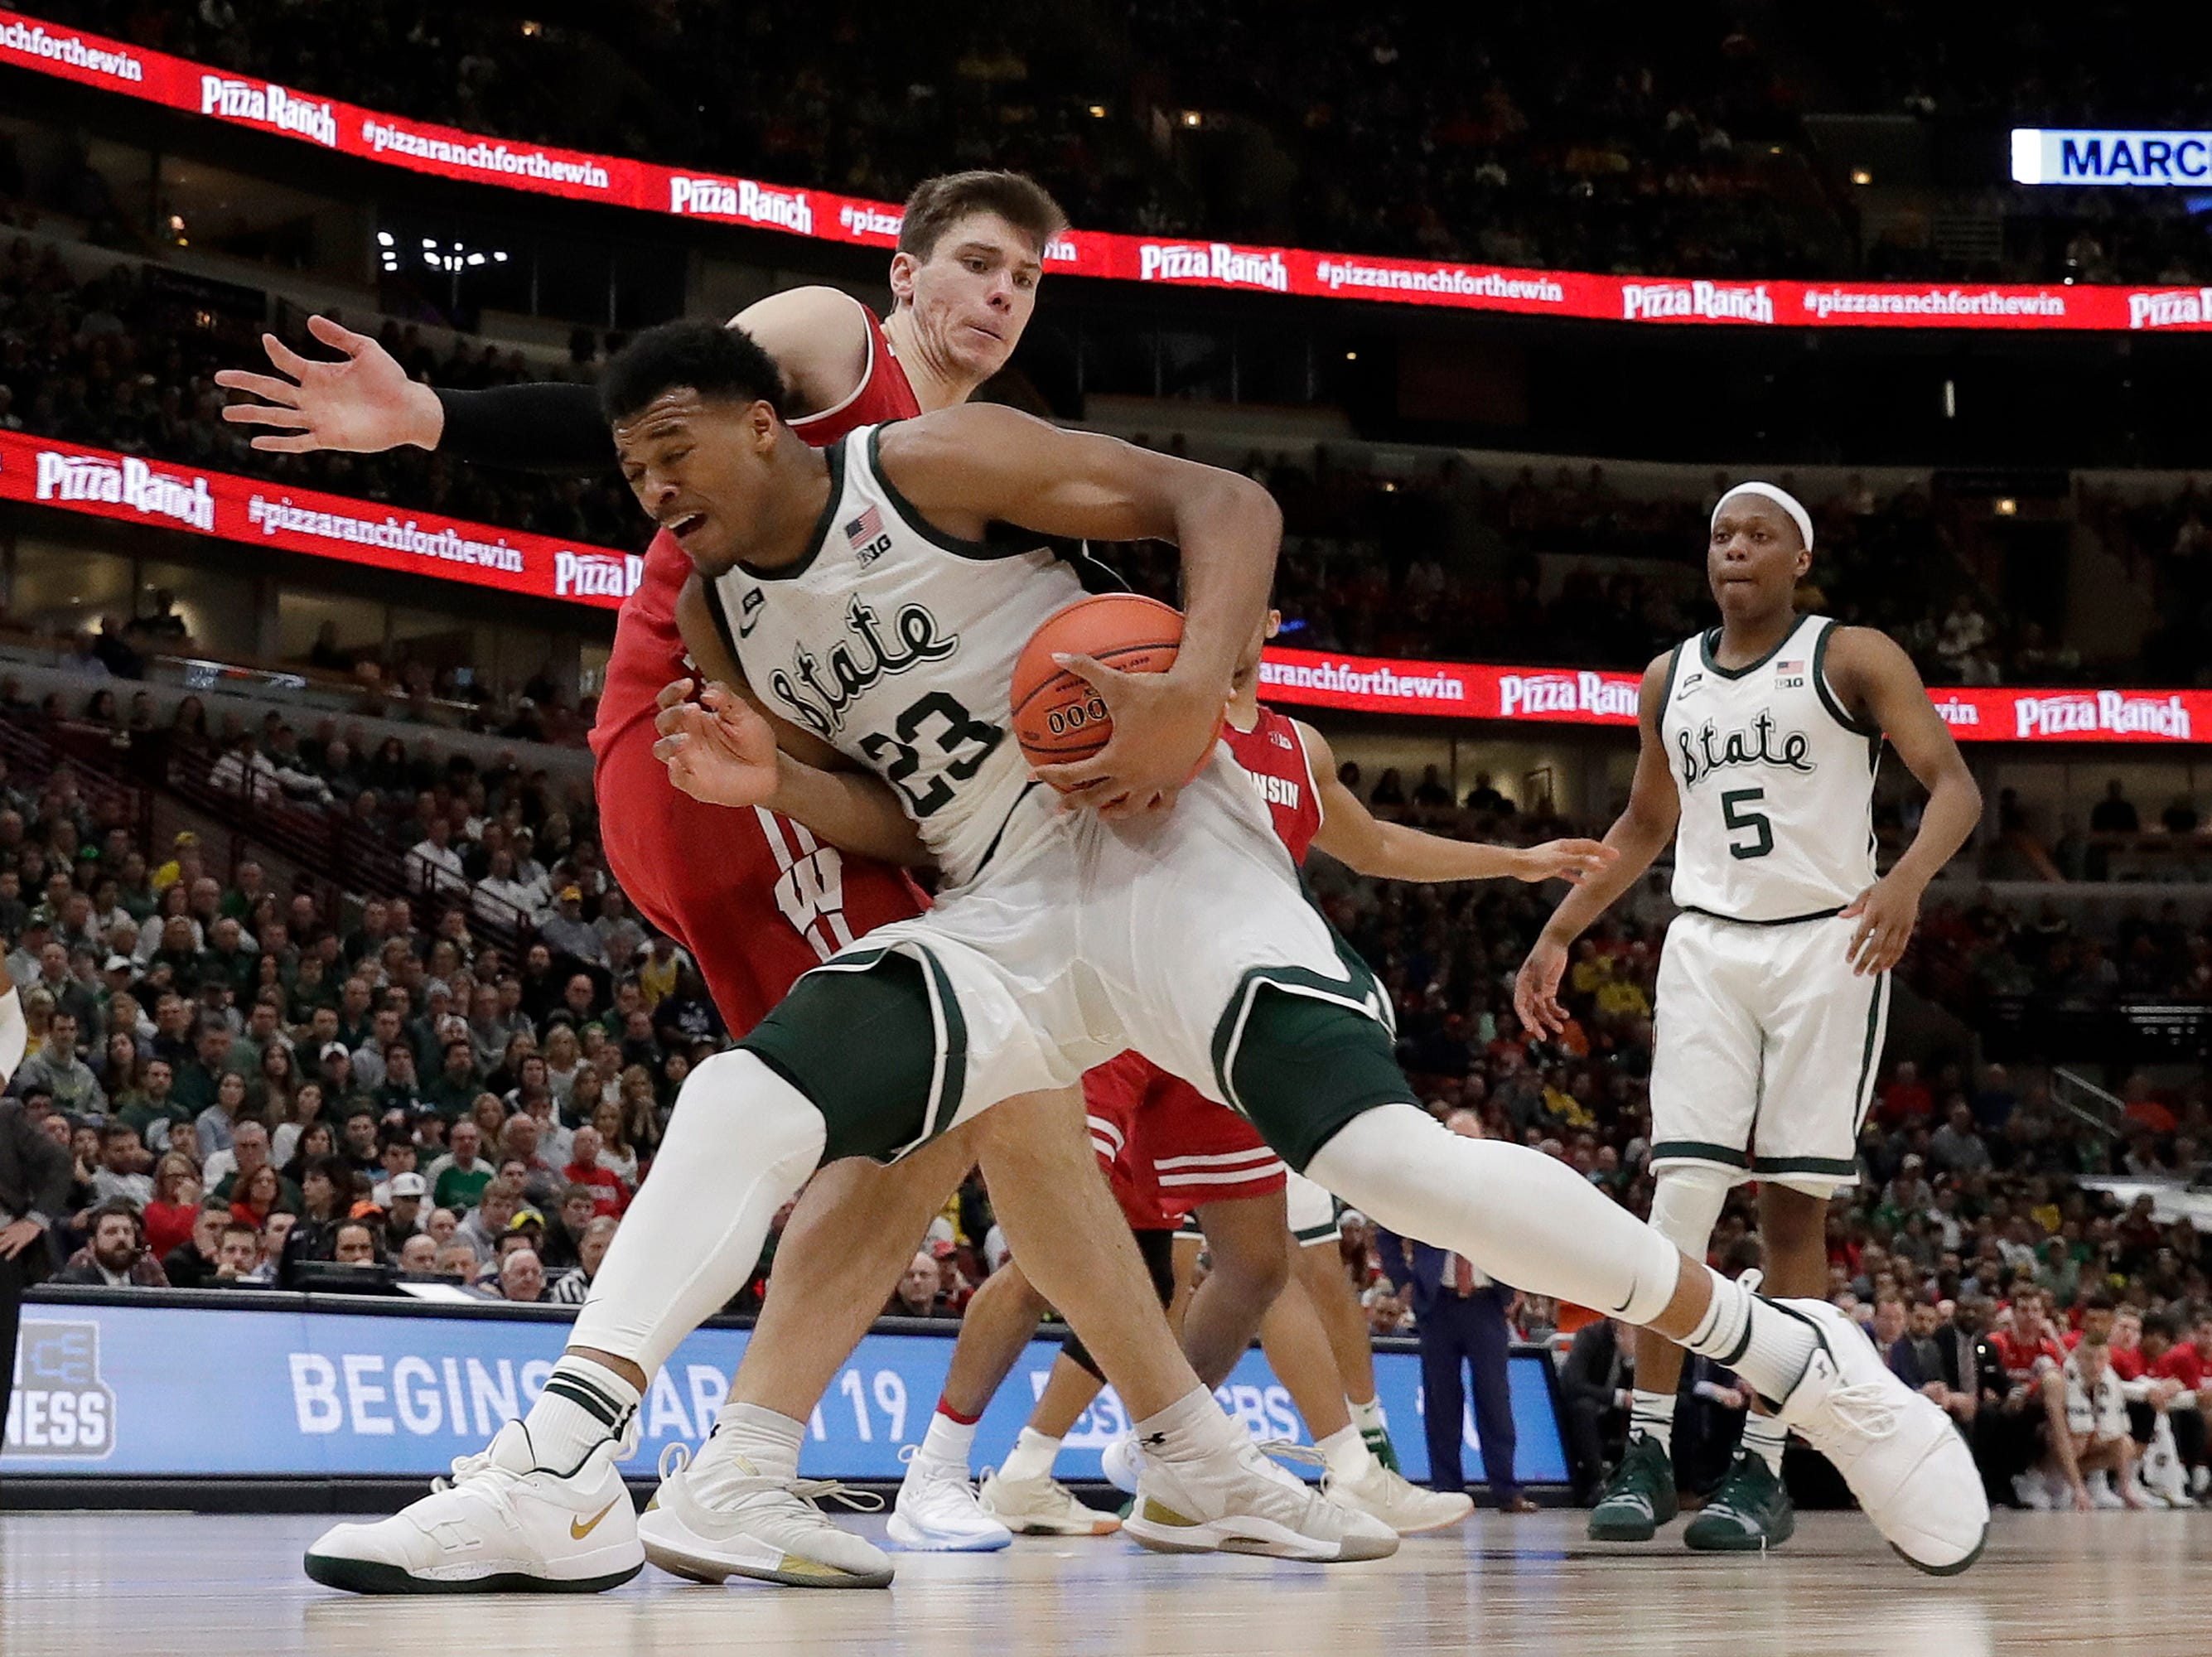 Michigan State's Xavier Tillman (23) drives against Wisconsin's Ethan Happ during the second half of an NCAA college basketball game in the semifinals of the Big Ten Conference tournament, Saturday, March 16, 2019, in Chicago.